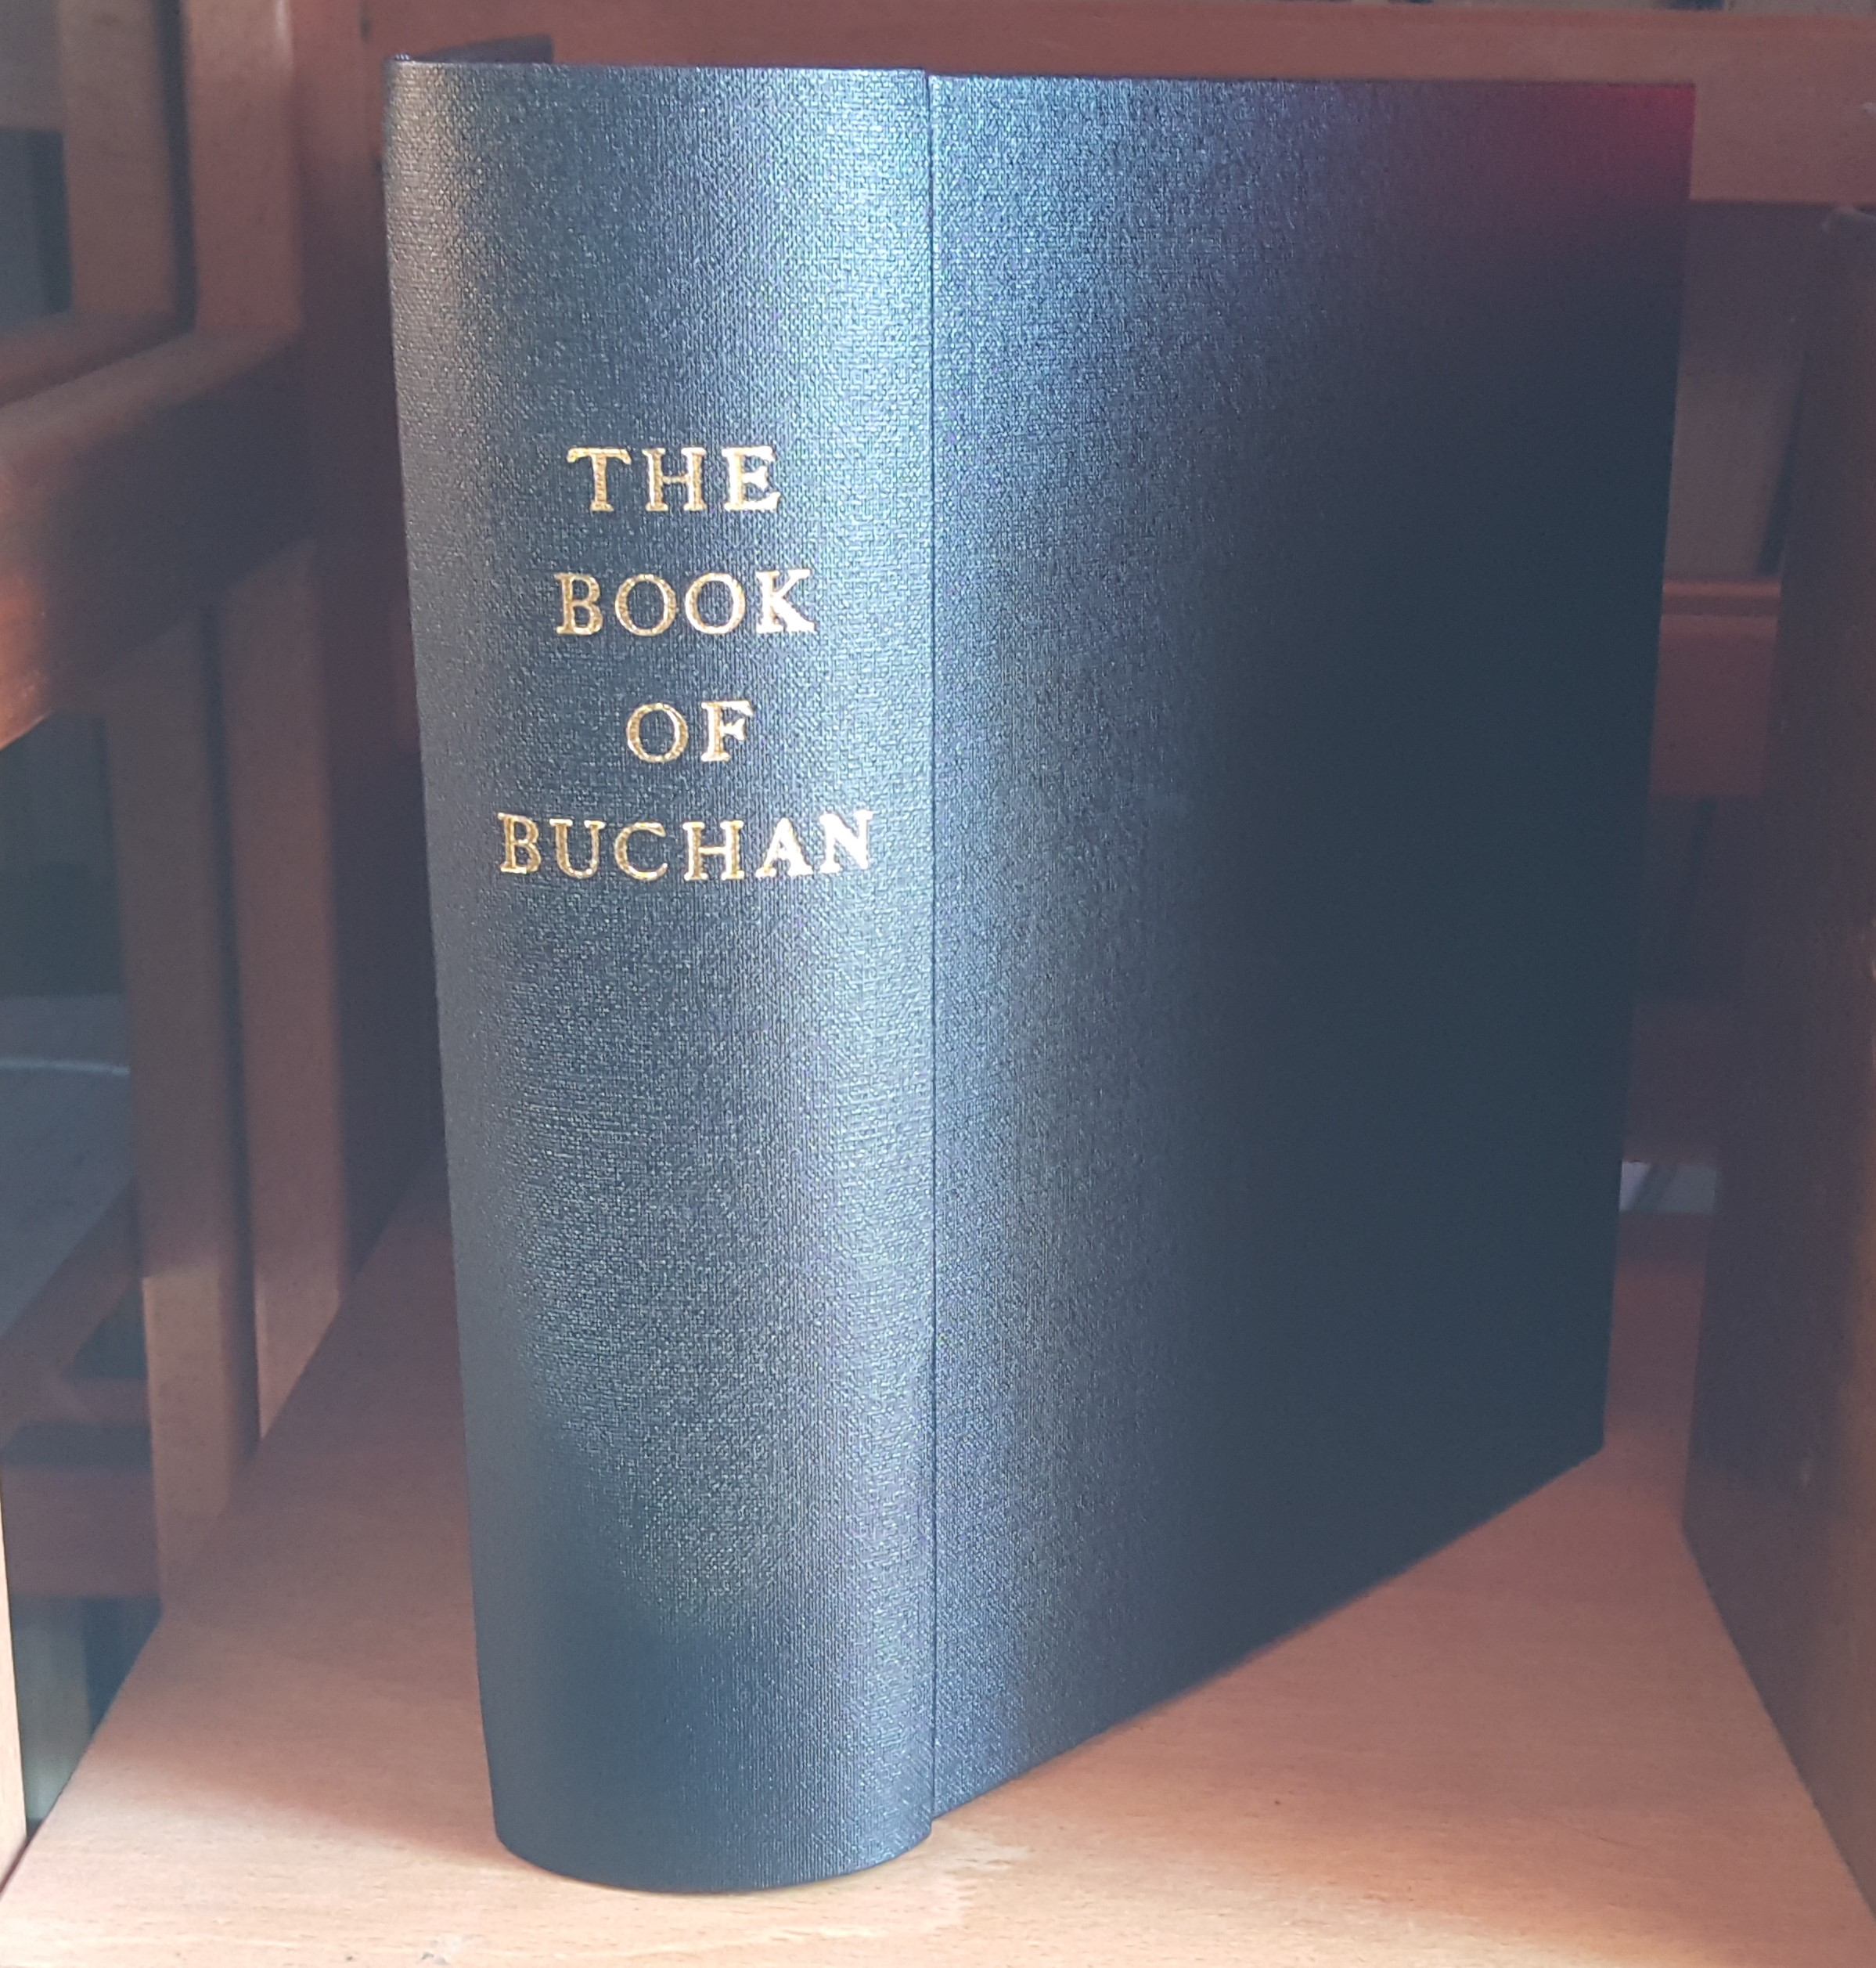 Image for The Book of Buchan: A Scientific Treatise, in Six Sections, on the Natural History of Buchan, Prehistoric Man in Aberdeenshire and the History of the North-East in Ancient, Medieval and Modern Times by Twenty-Five Contributors.